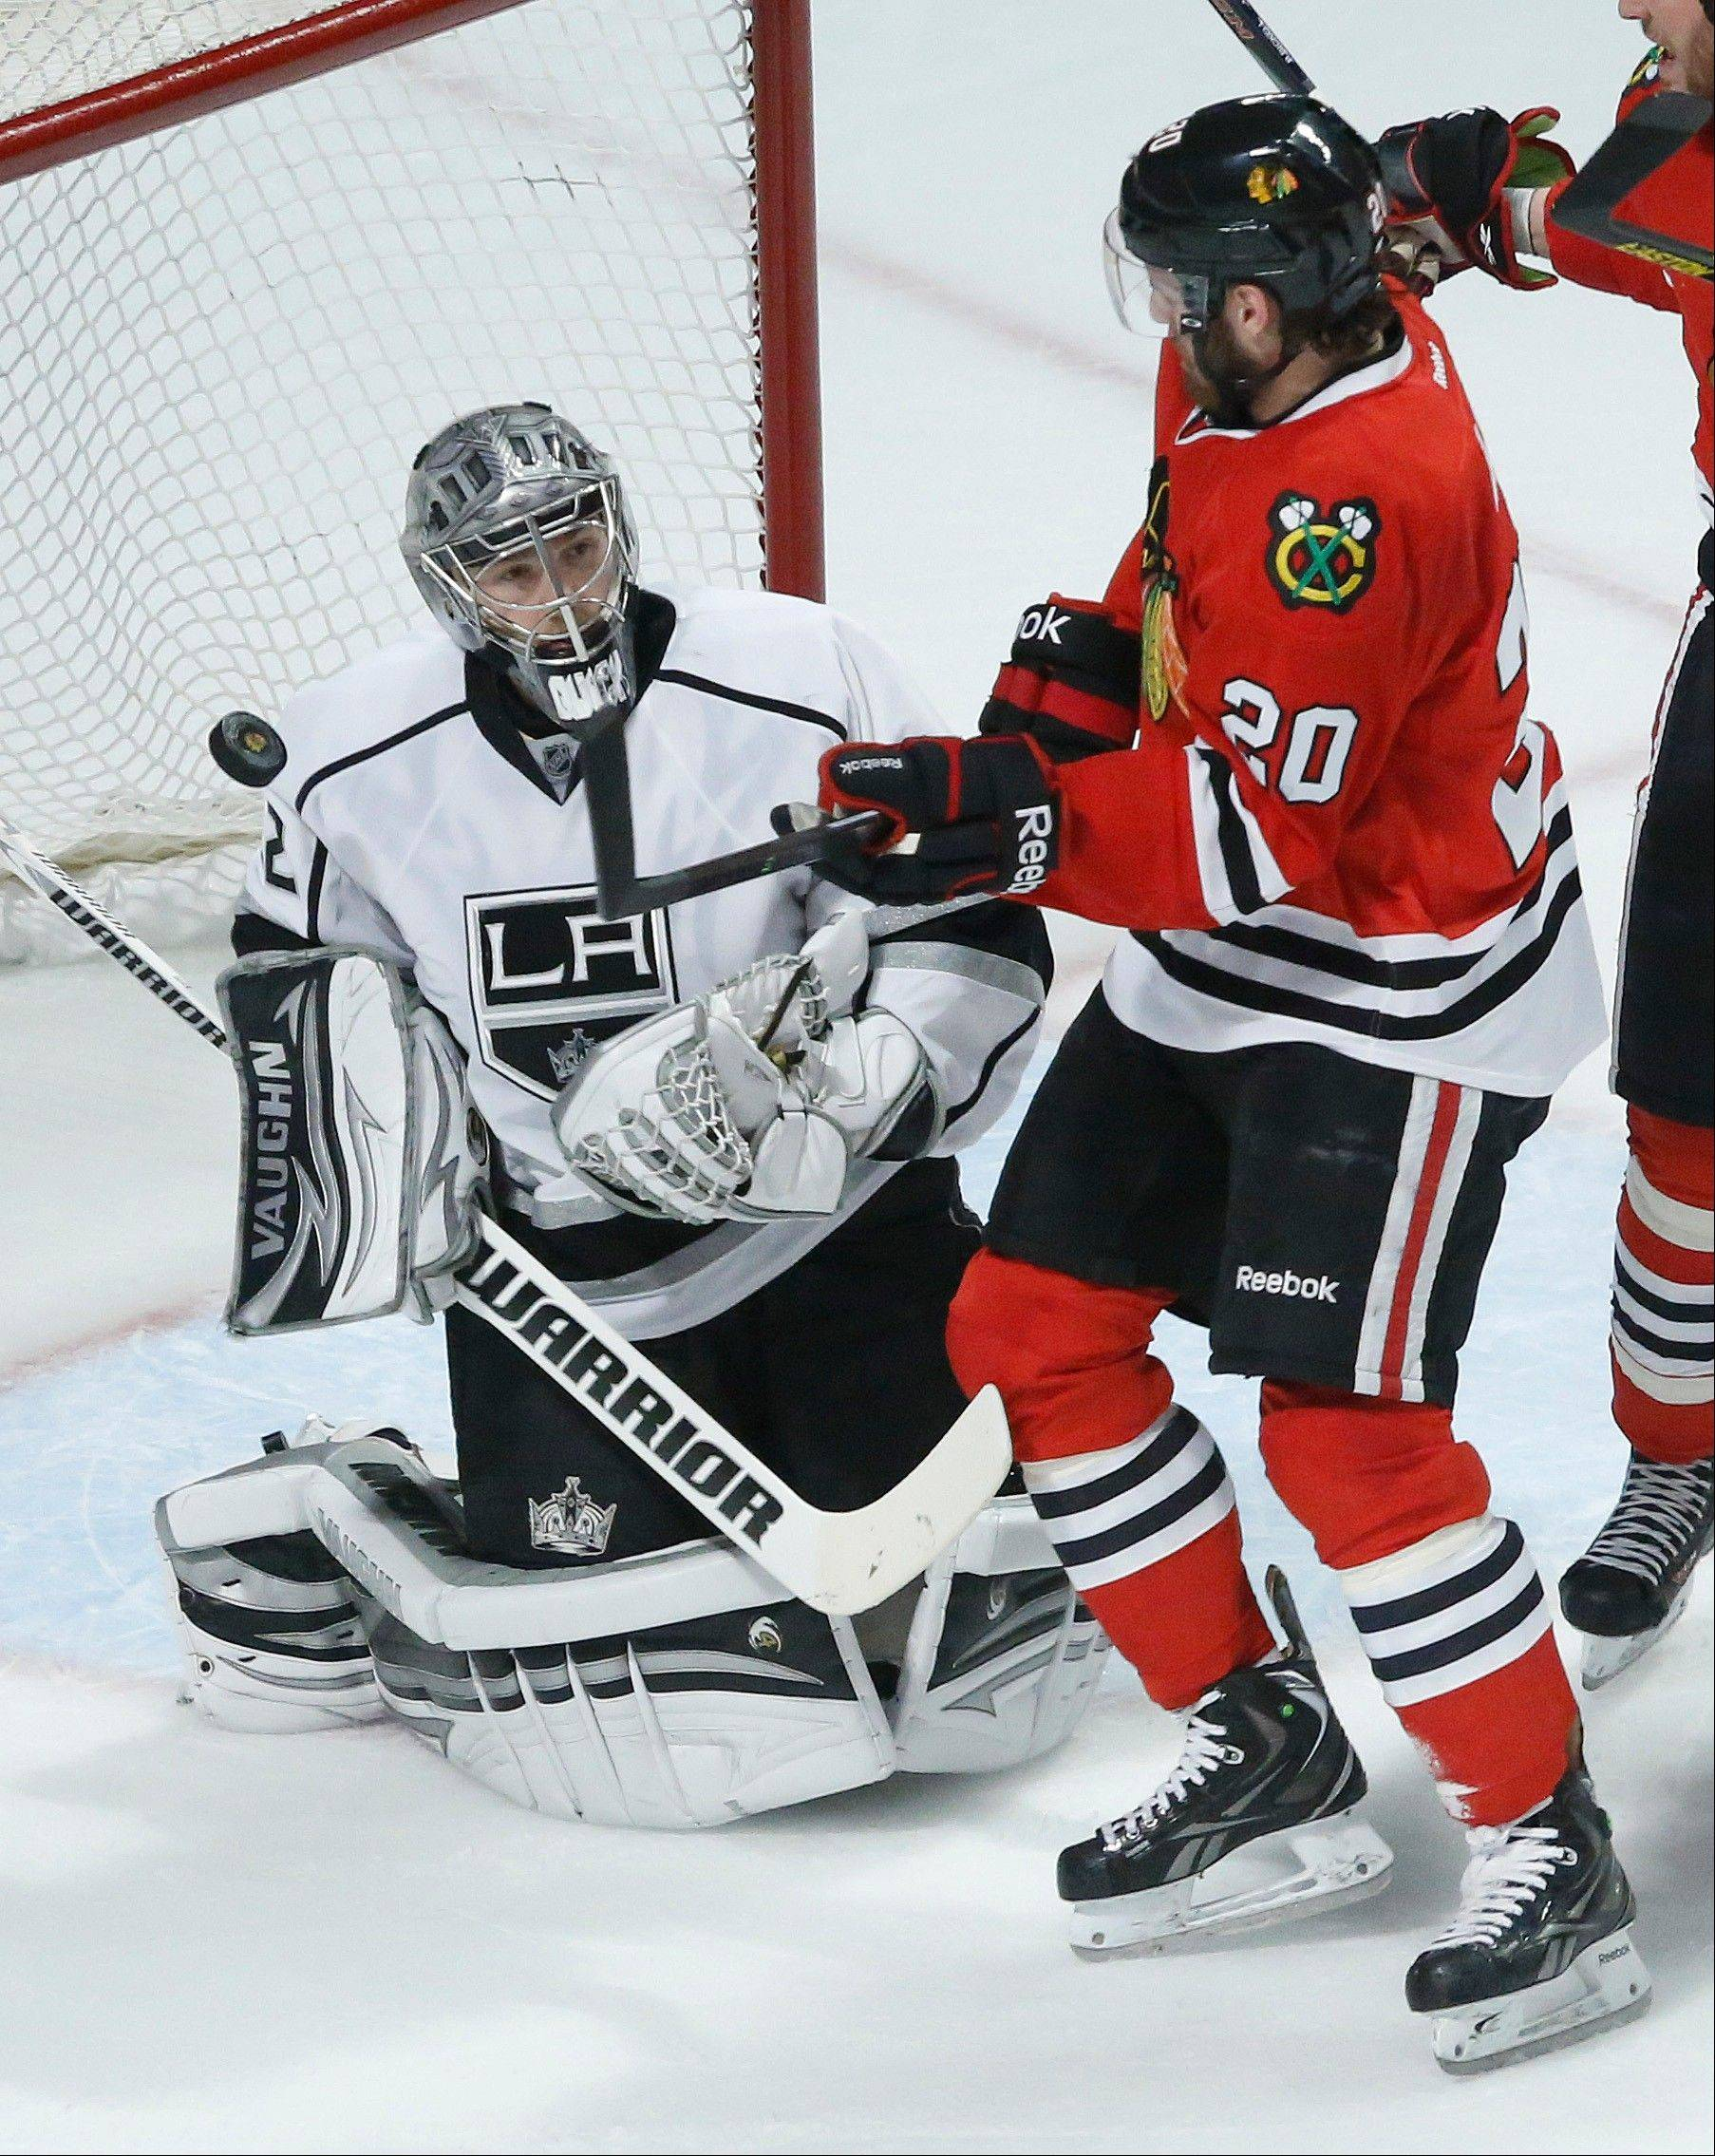 Los Angeles Kings goalie Jonathan Quick (32) blocks a shot by Chicago Blackhawks left wing Brandon Saad (20) during the first period in Game 1 of the NHL hockey Stanley Cup Western Conference finals Saturday, June 1, 2013, in Chicago.